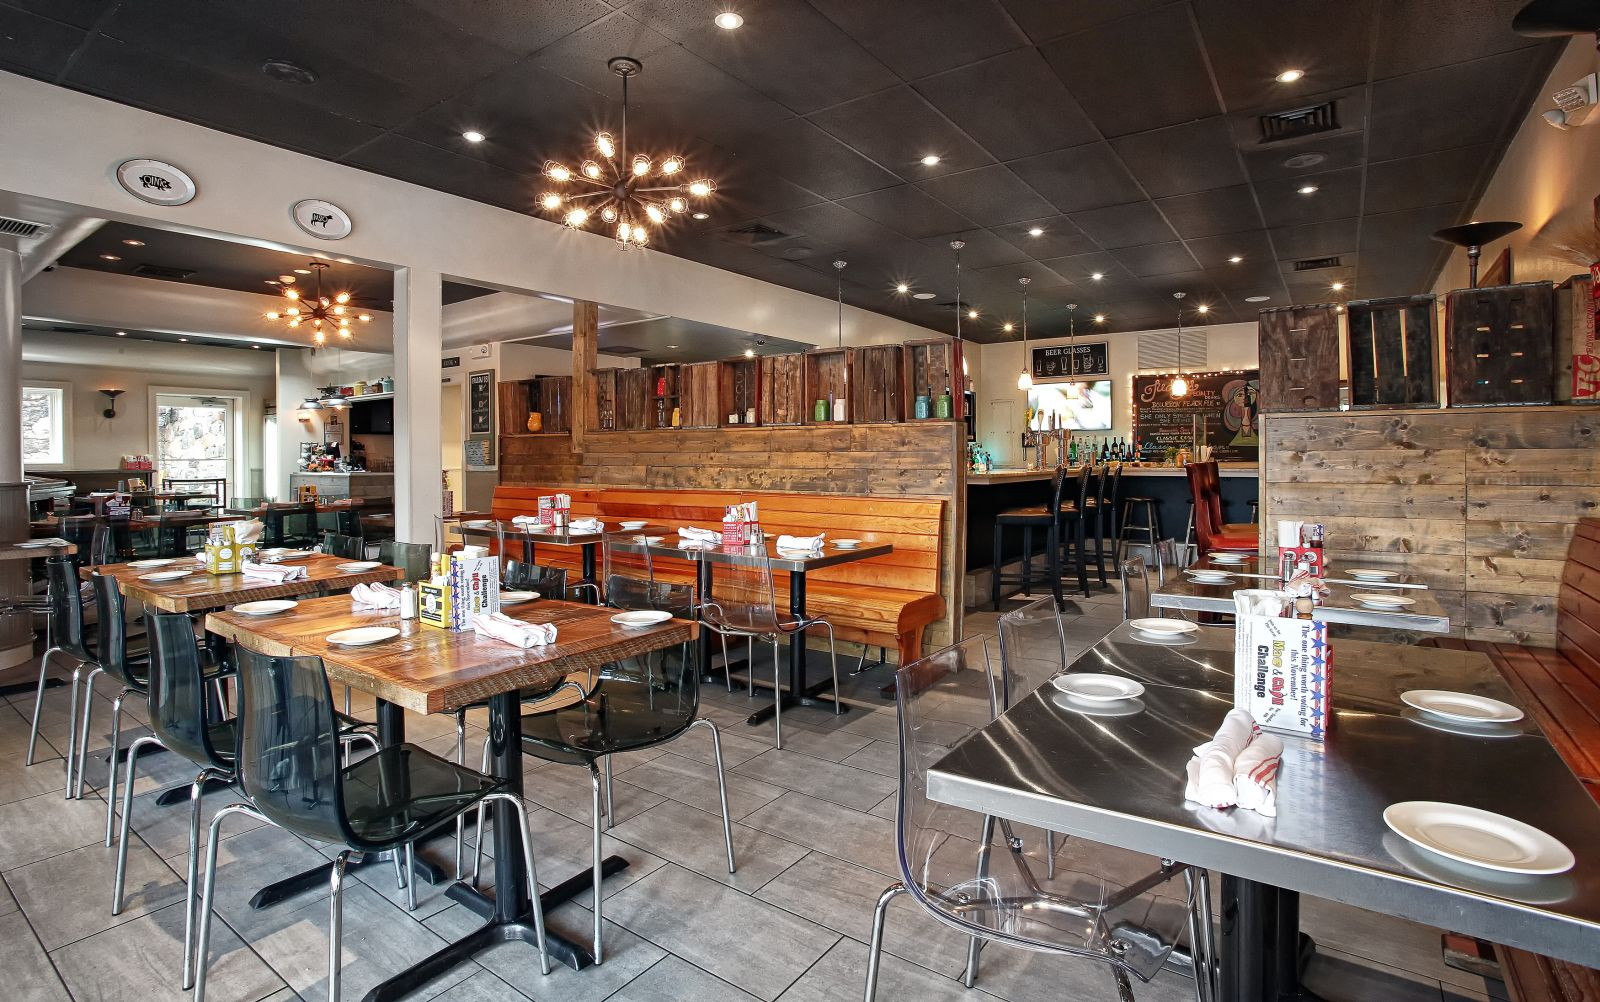 revealing another side to her culinary prowess with the addition of judys bar kitchen judys is pure americana wrapped in casual surroundings for a - Judys Kitchen